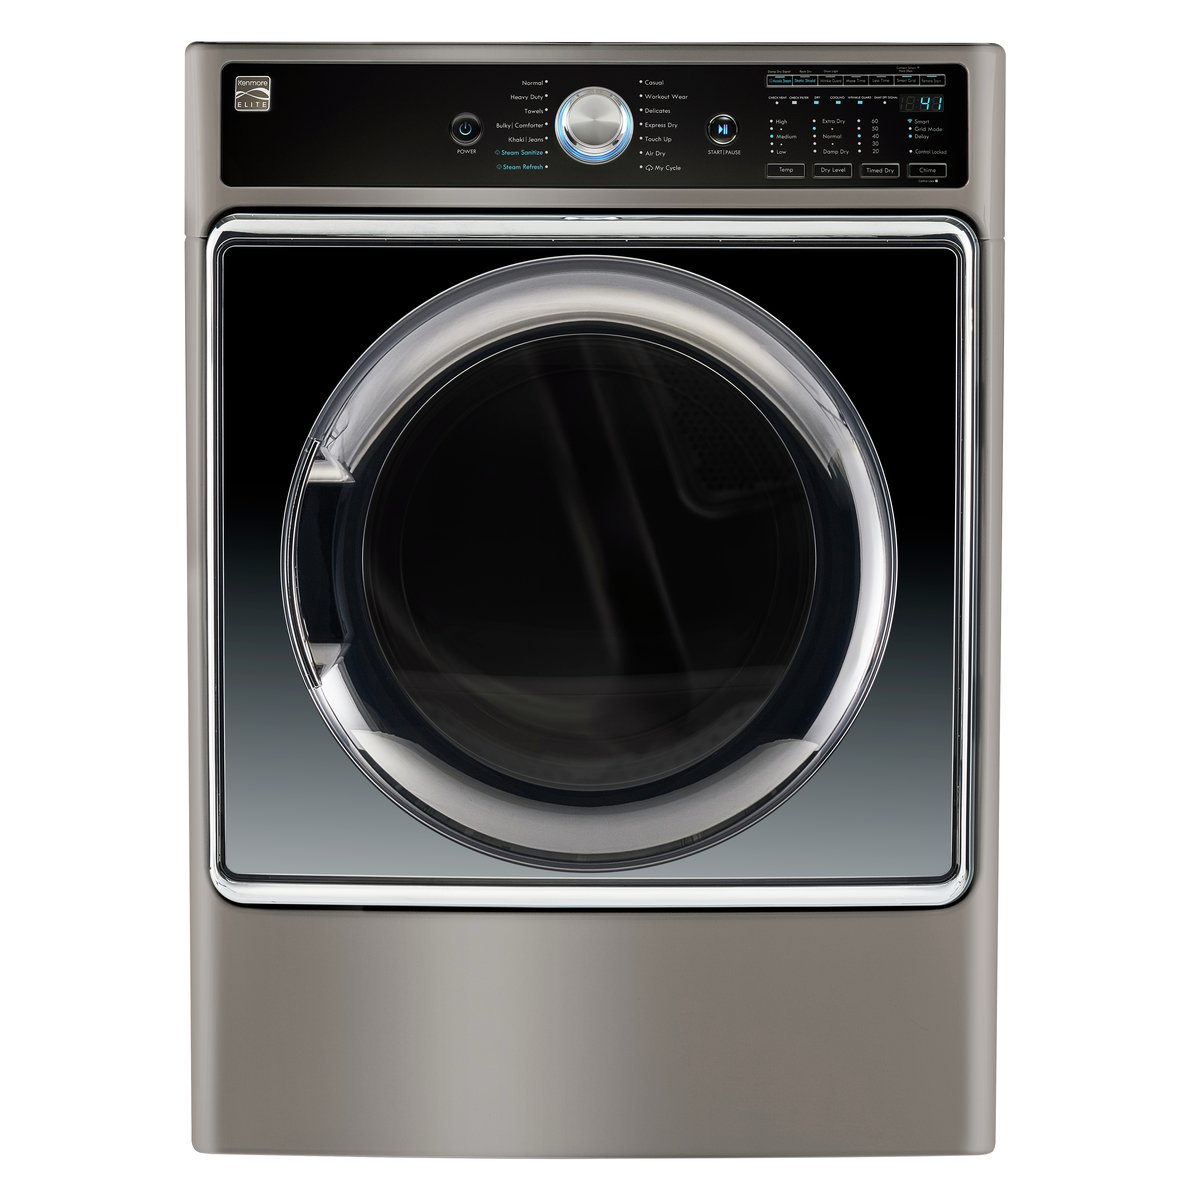 Kenmore Smart 91983 9.0 cu. ft. Gas Dryer with Accela Steam Technology in Metallic Silver - Compatible with Amazon Alexa, includes delivery and hookup